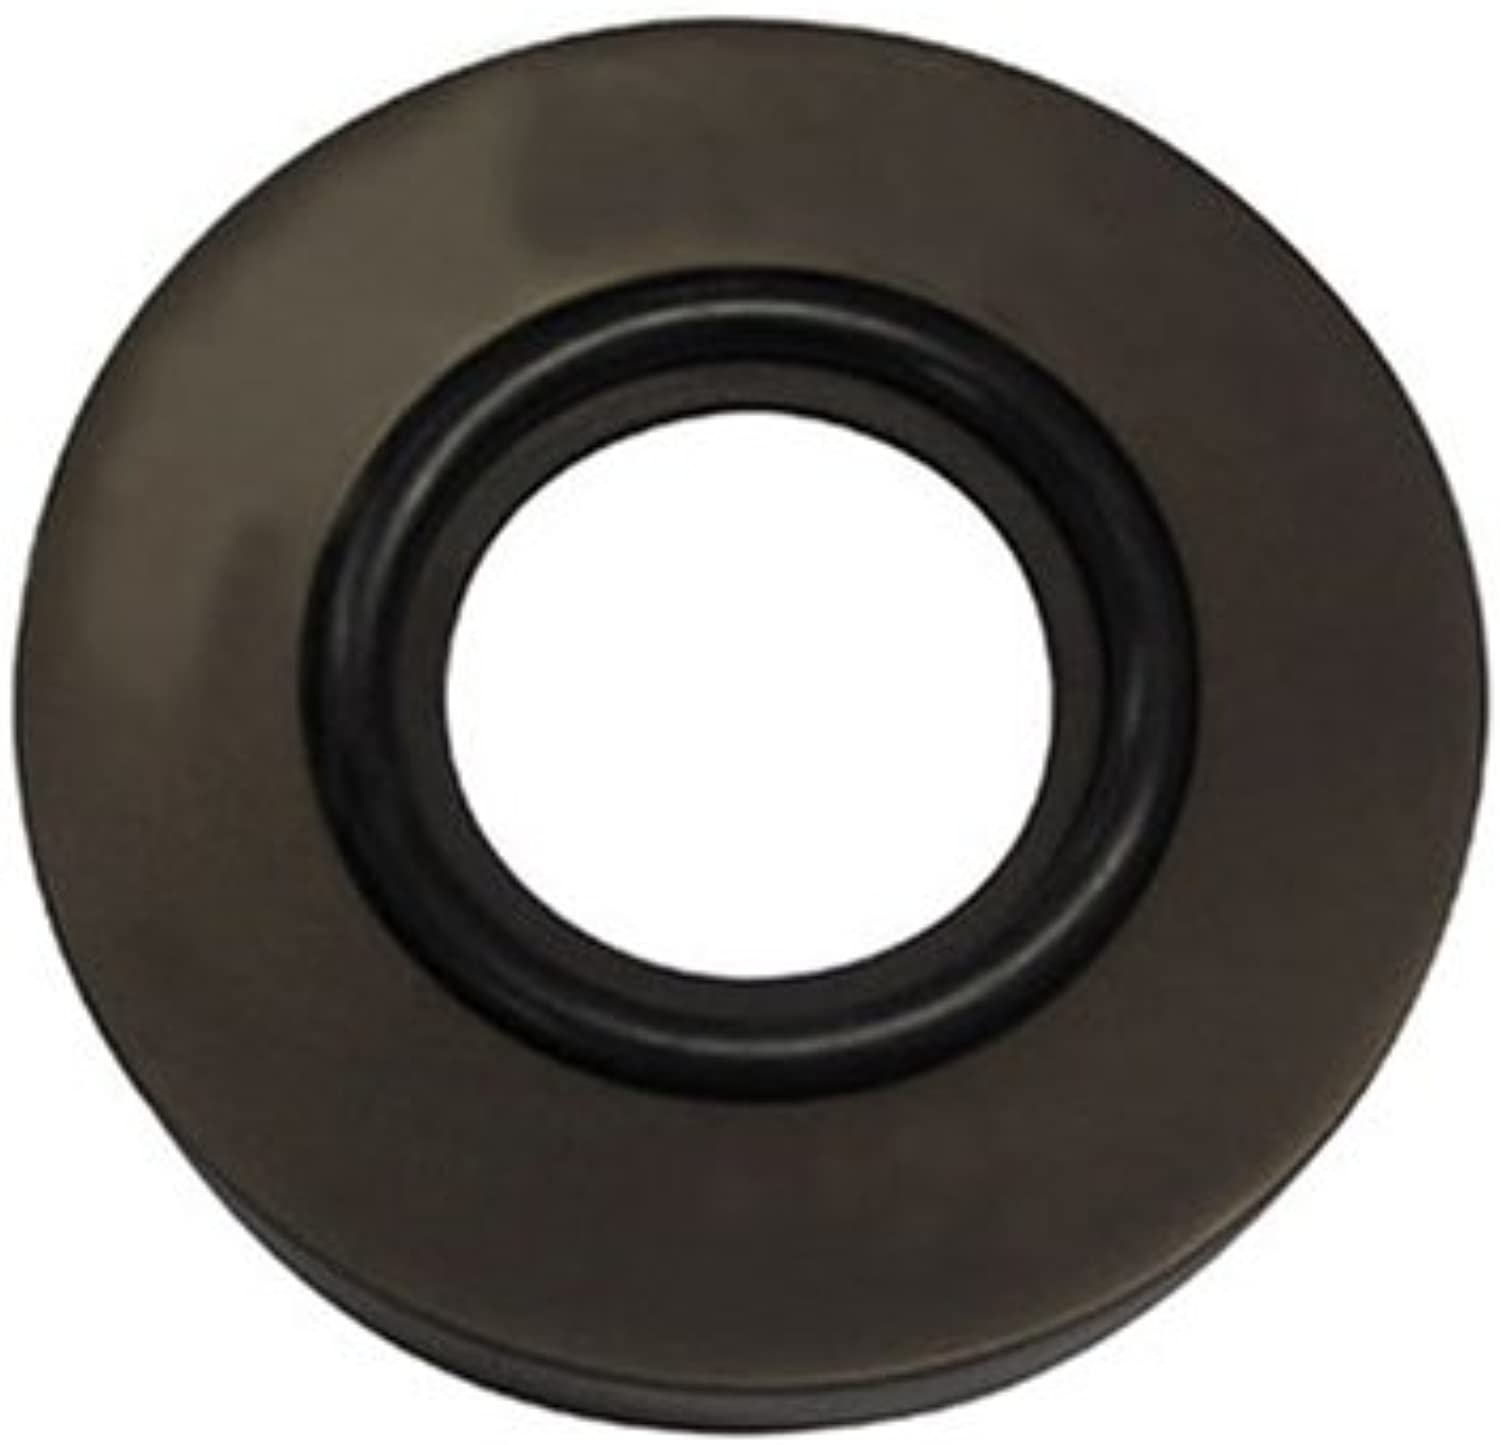 Mounting Ring in Oil Rubbed Bronze Finish